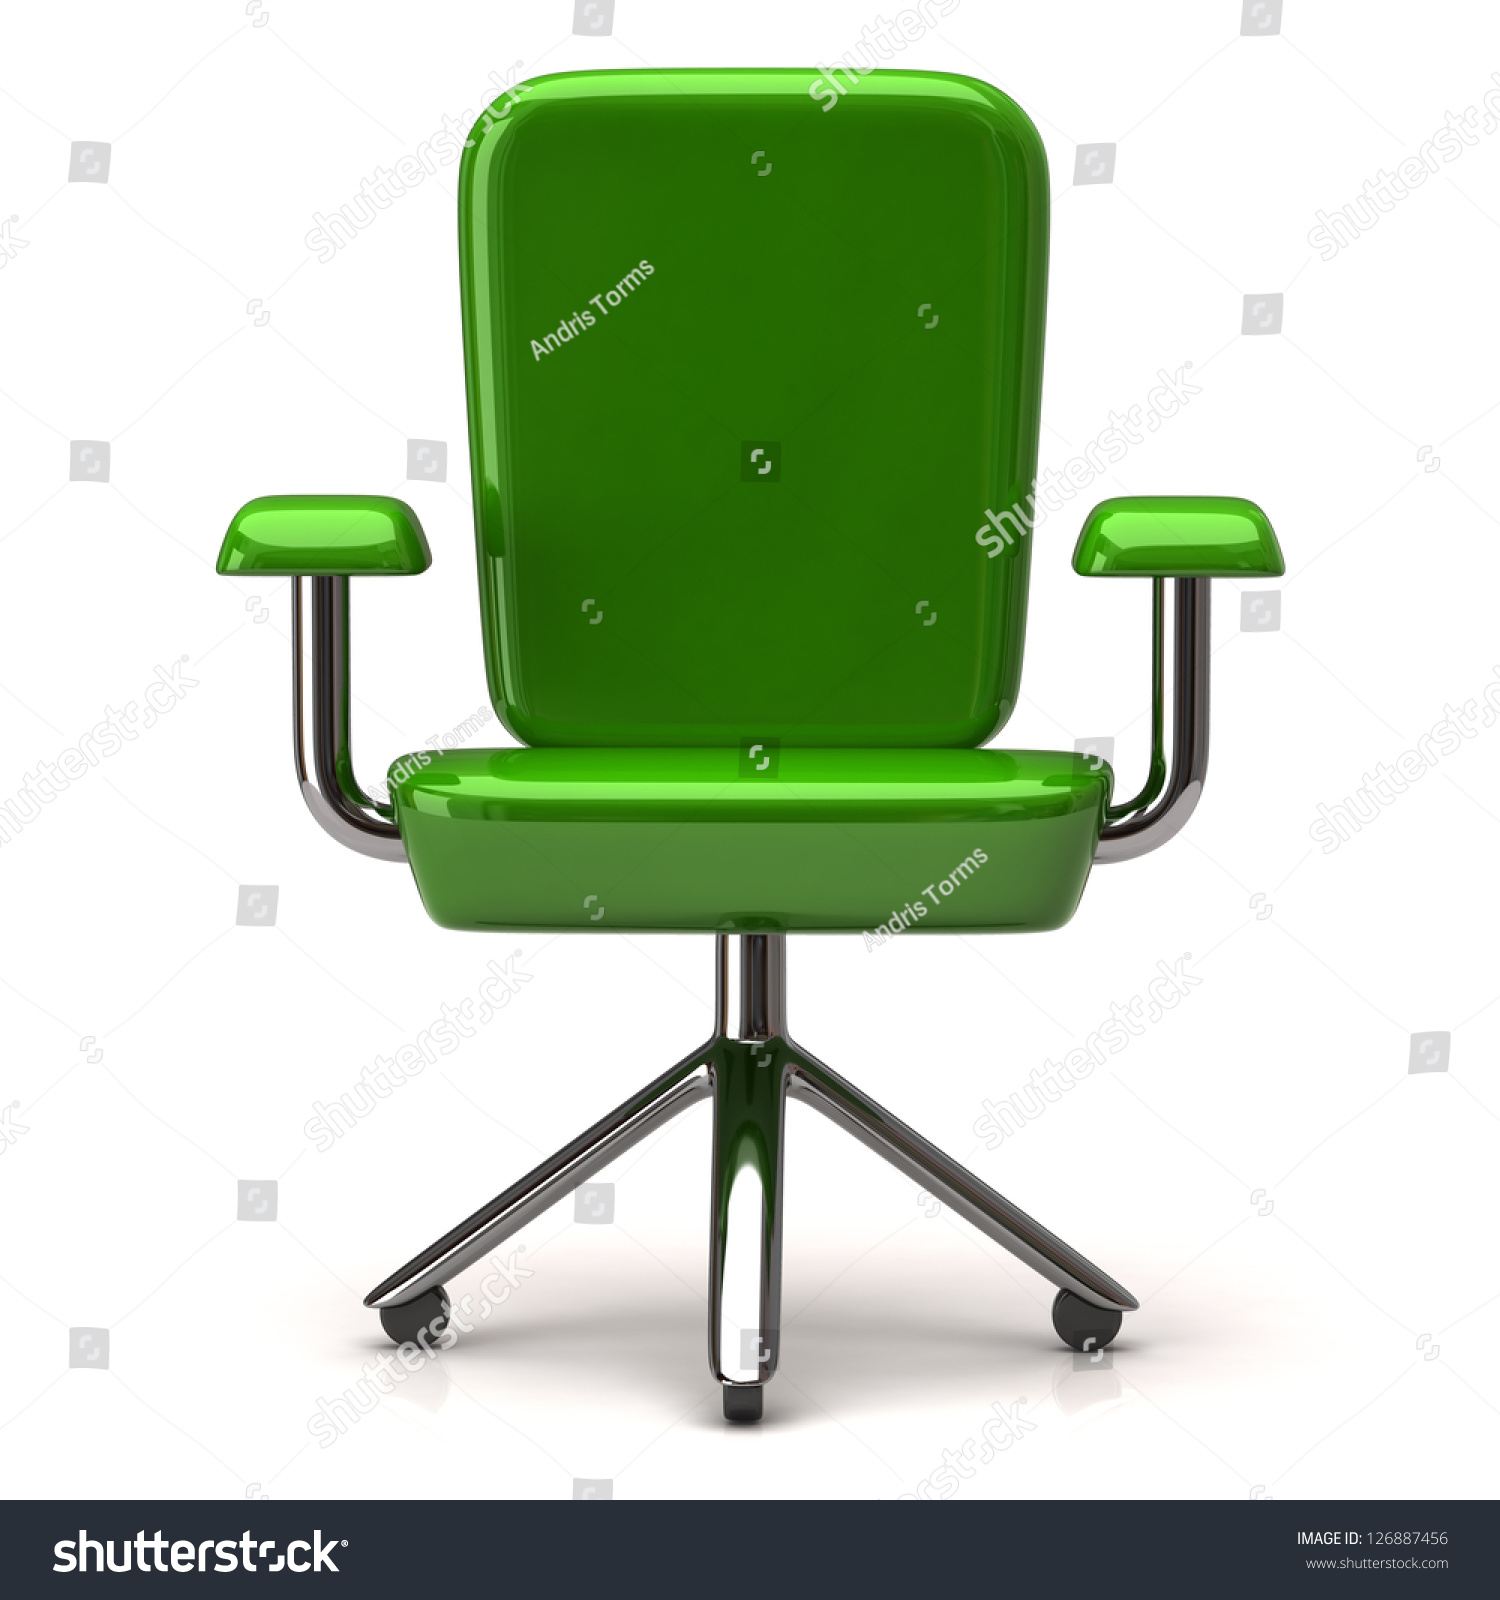 Green Stylized fice Chair 3d Stock Illustration